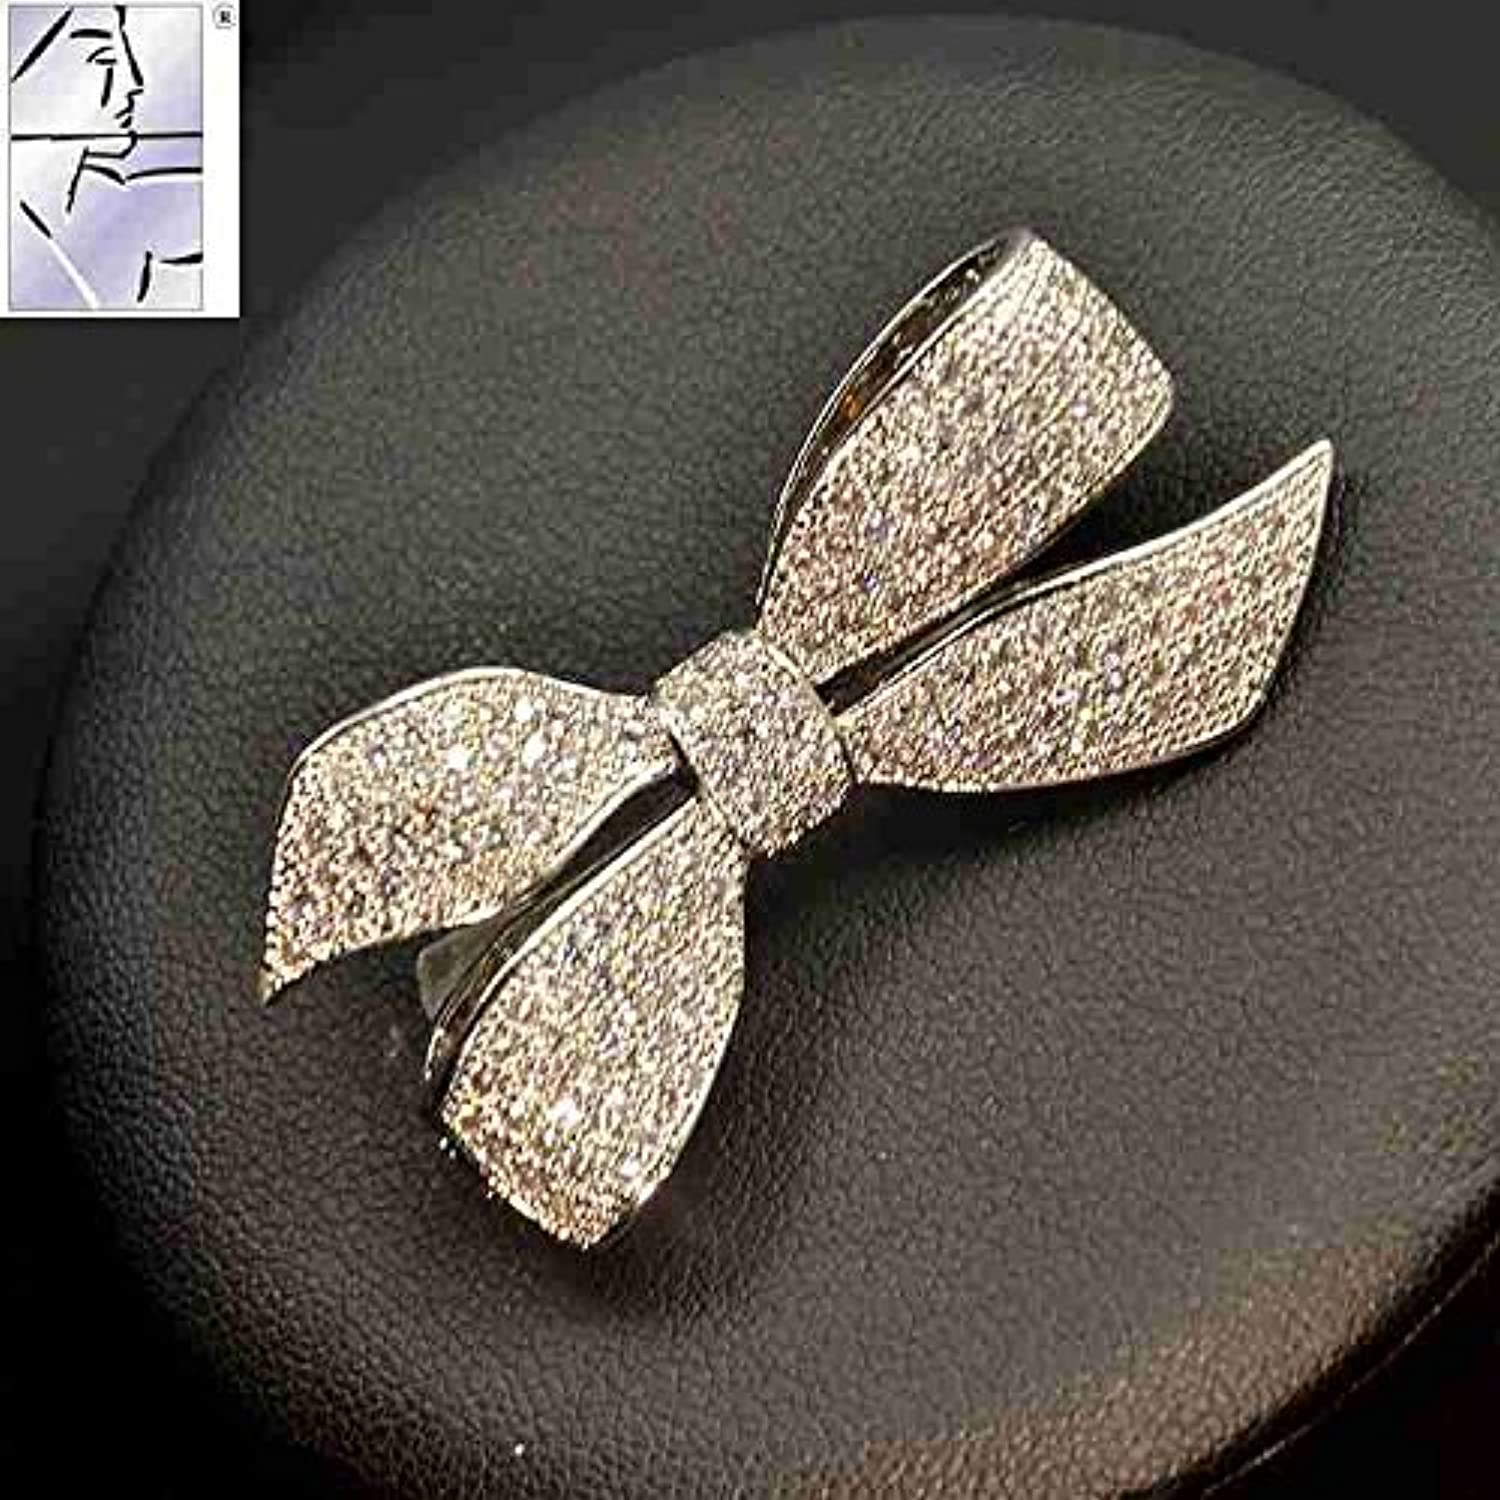 2018 Autumn and Winter Retro Micro Pave Zircon Bow Brooch pin Badge Women Girls fine Diamond Corsage Brooch pin Badge Suit Accessories